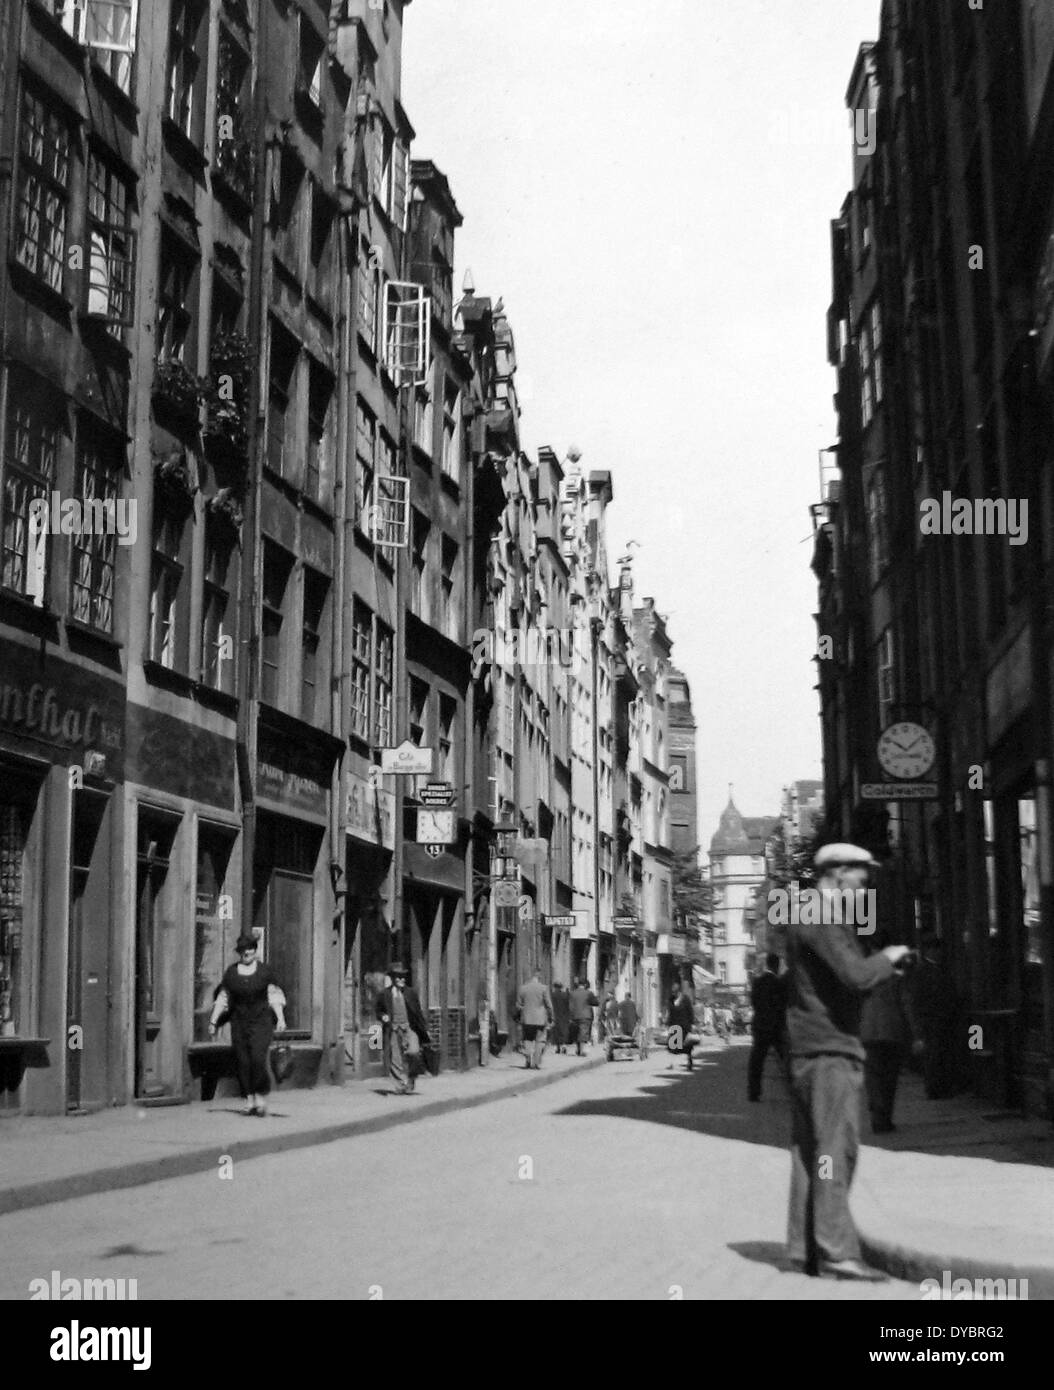 Danzig / Gdansk Poland probably 1930s Stock Photo